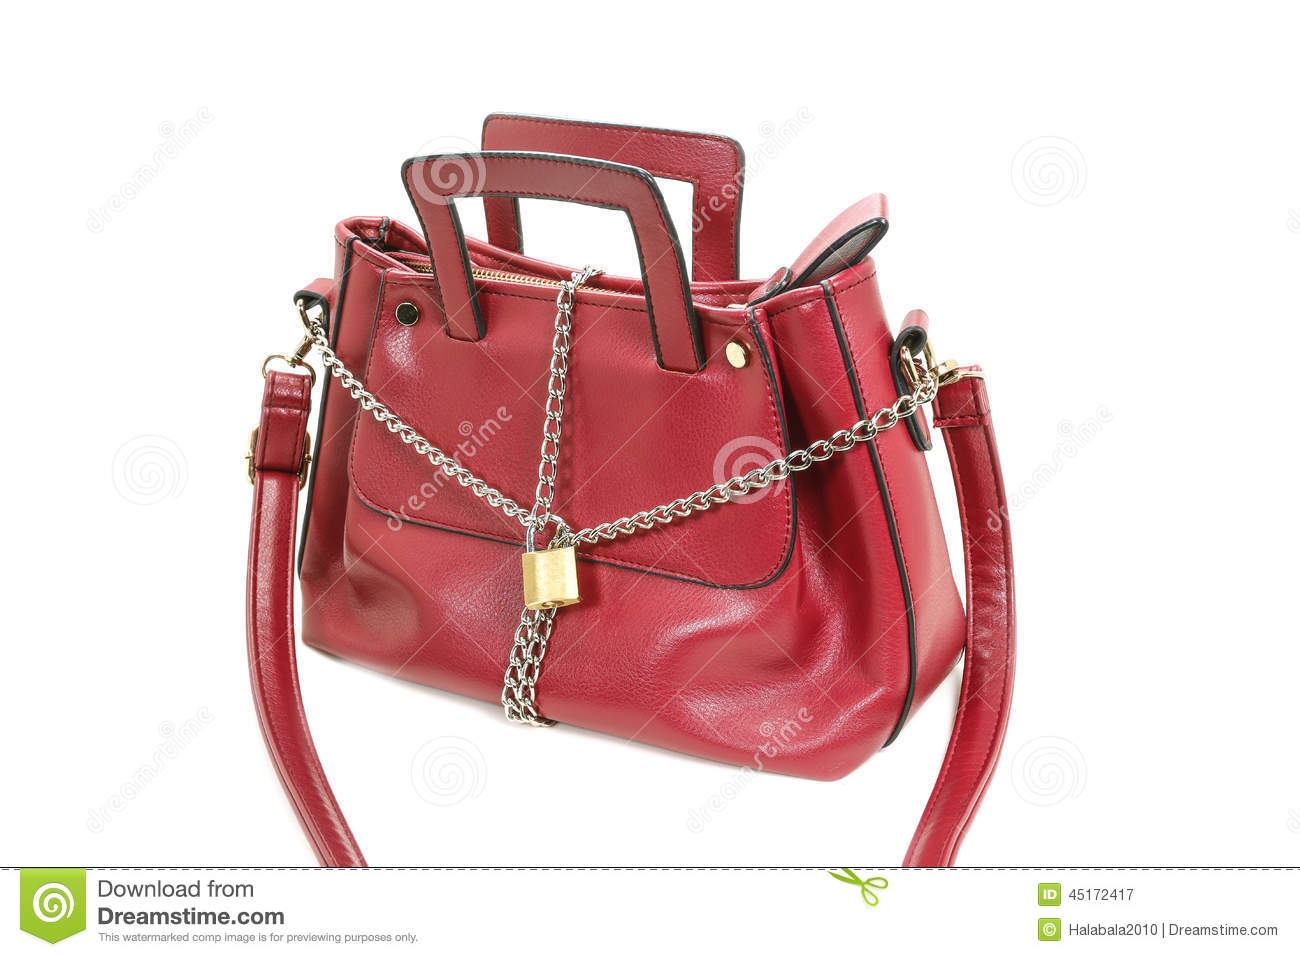 lock-chain-woman-bag-locked-45172417.jpg